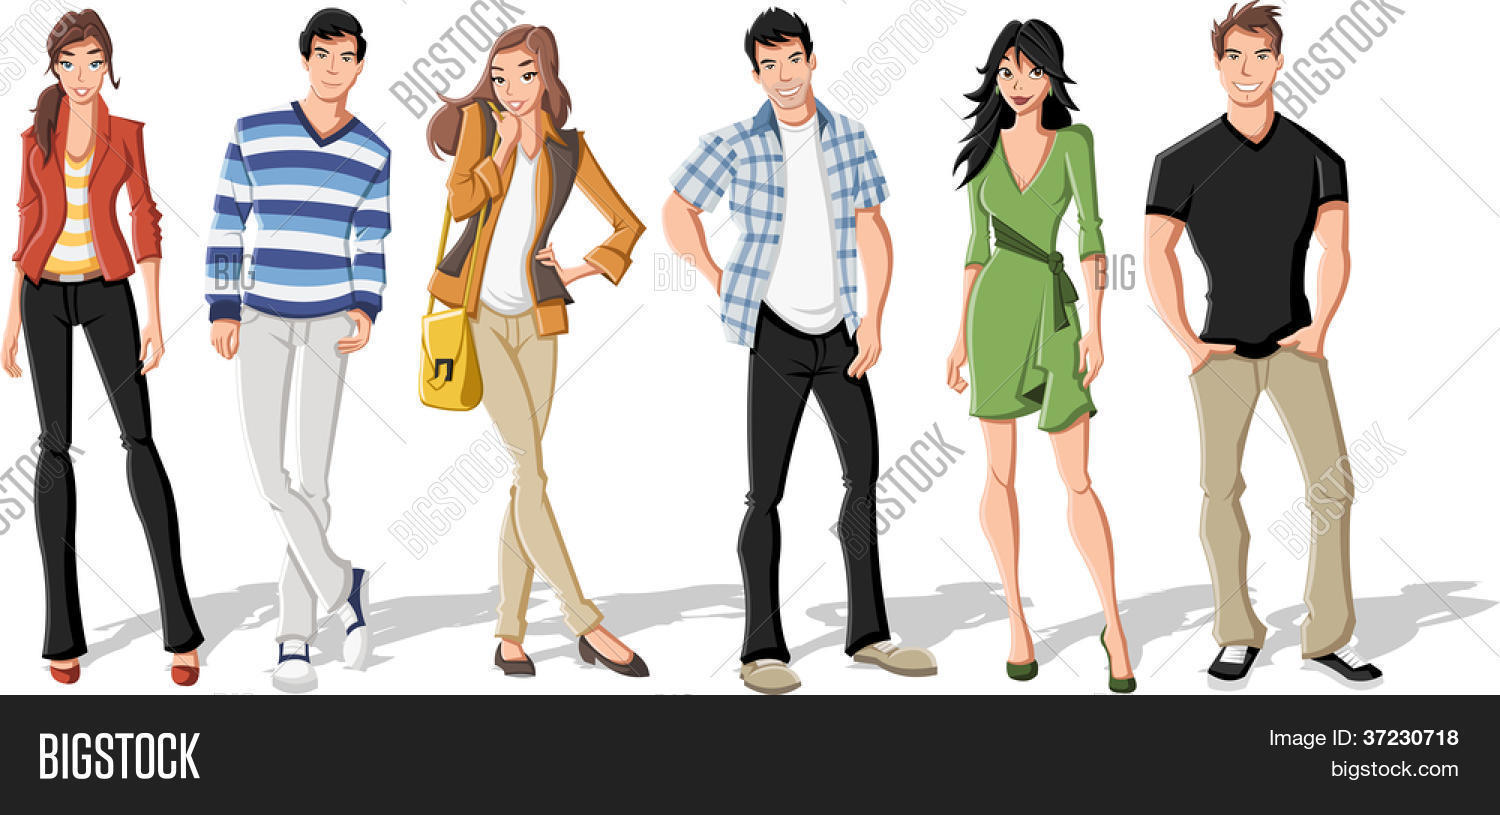 Group Fashion Cartoon Young People Vector Photo Bigstock